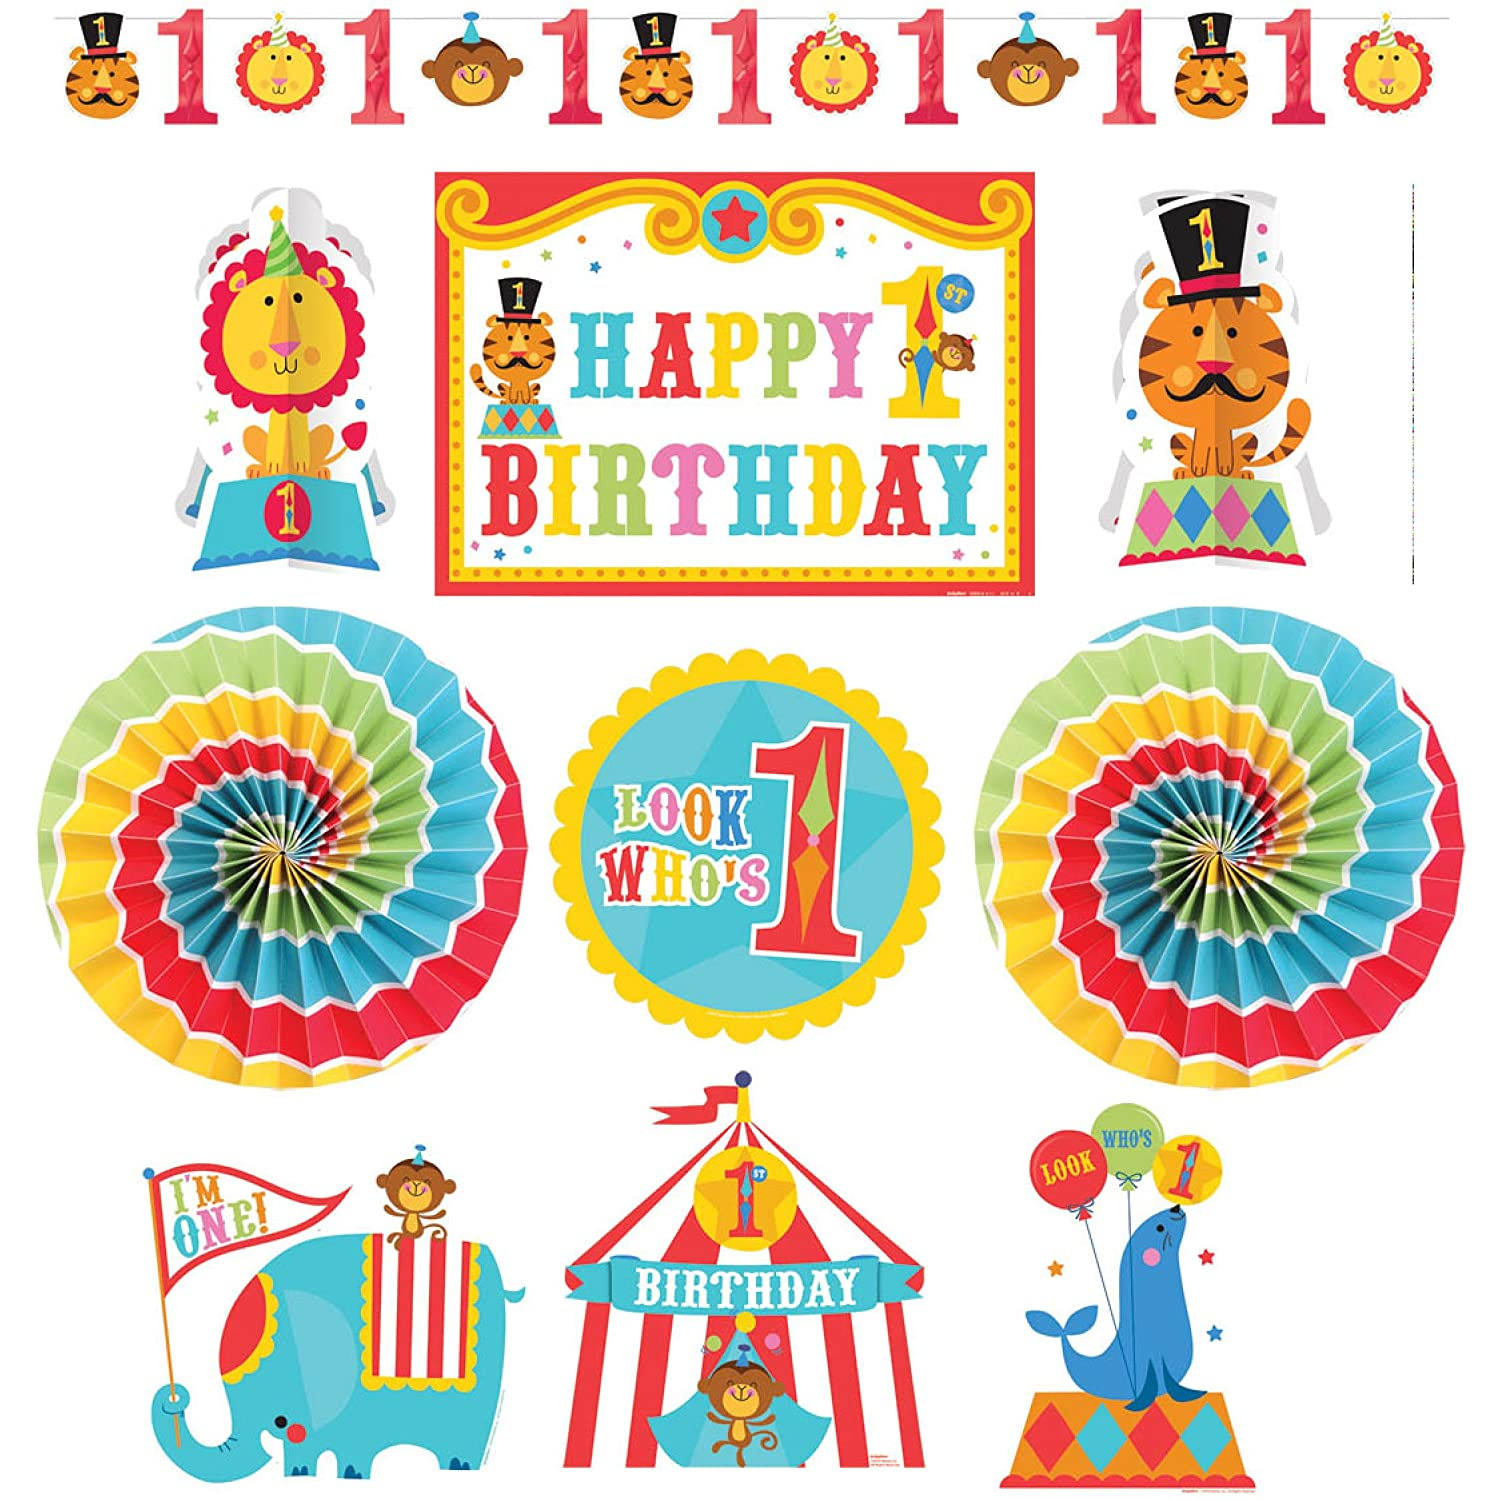 Amazon.com: Fisher Price 1st Birthday Circus Room Decorating Kit (10pc): Toys & Games